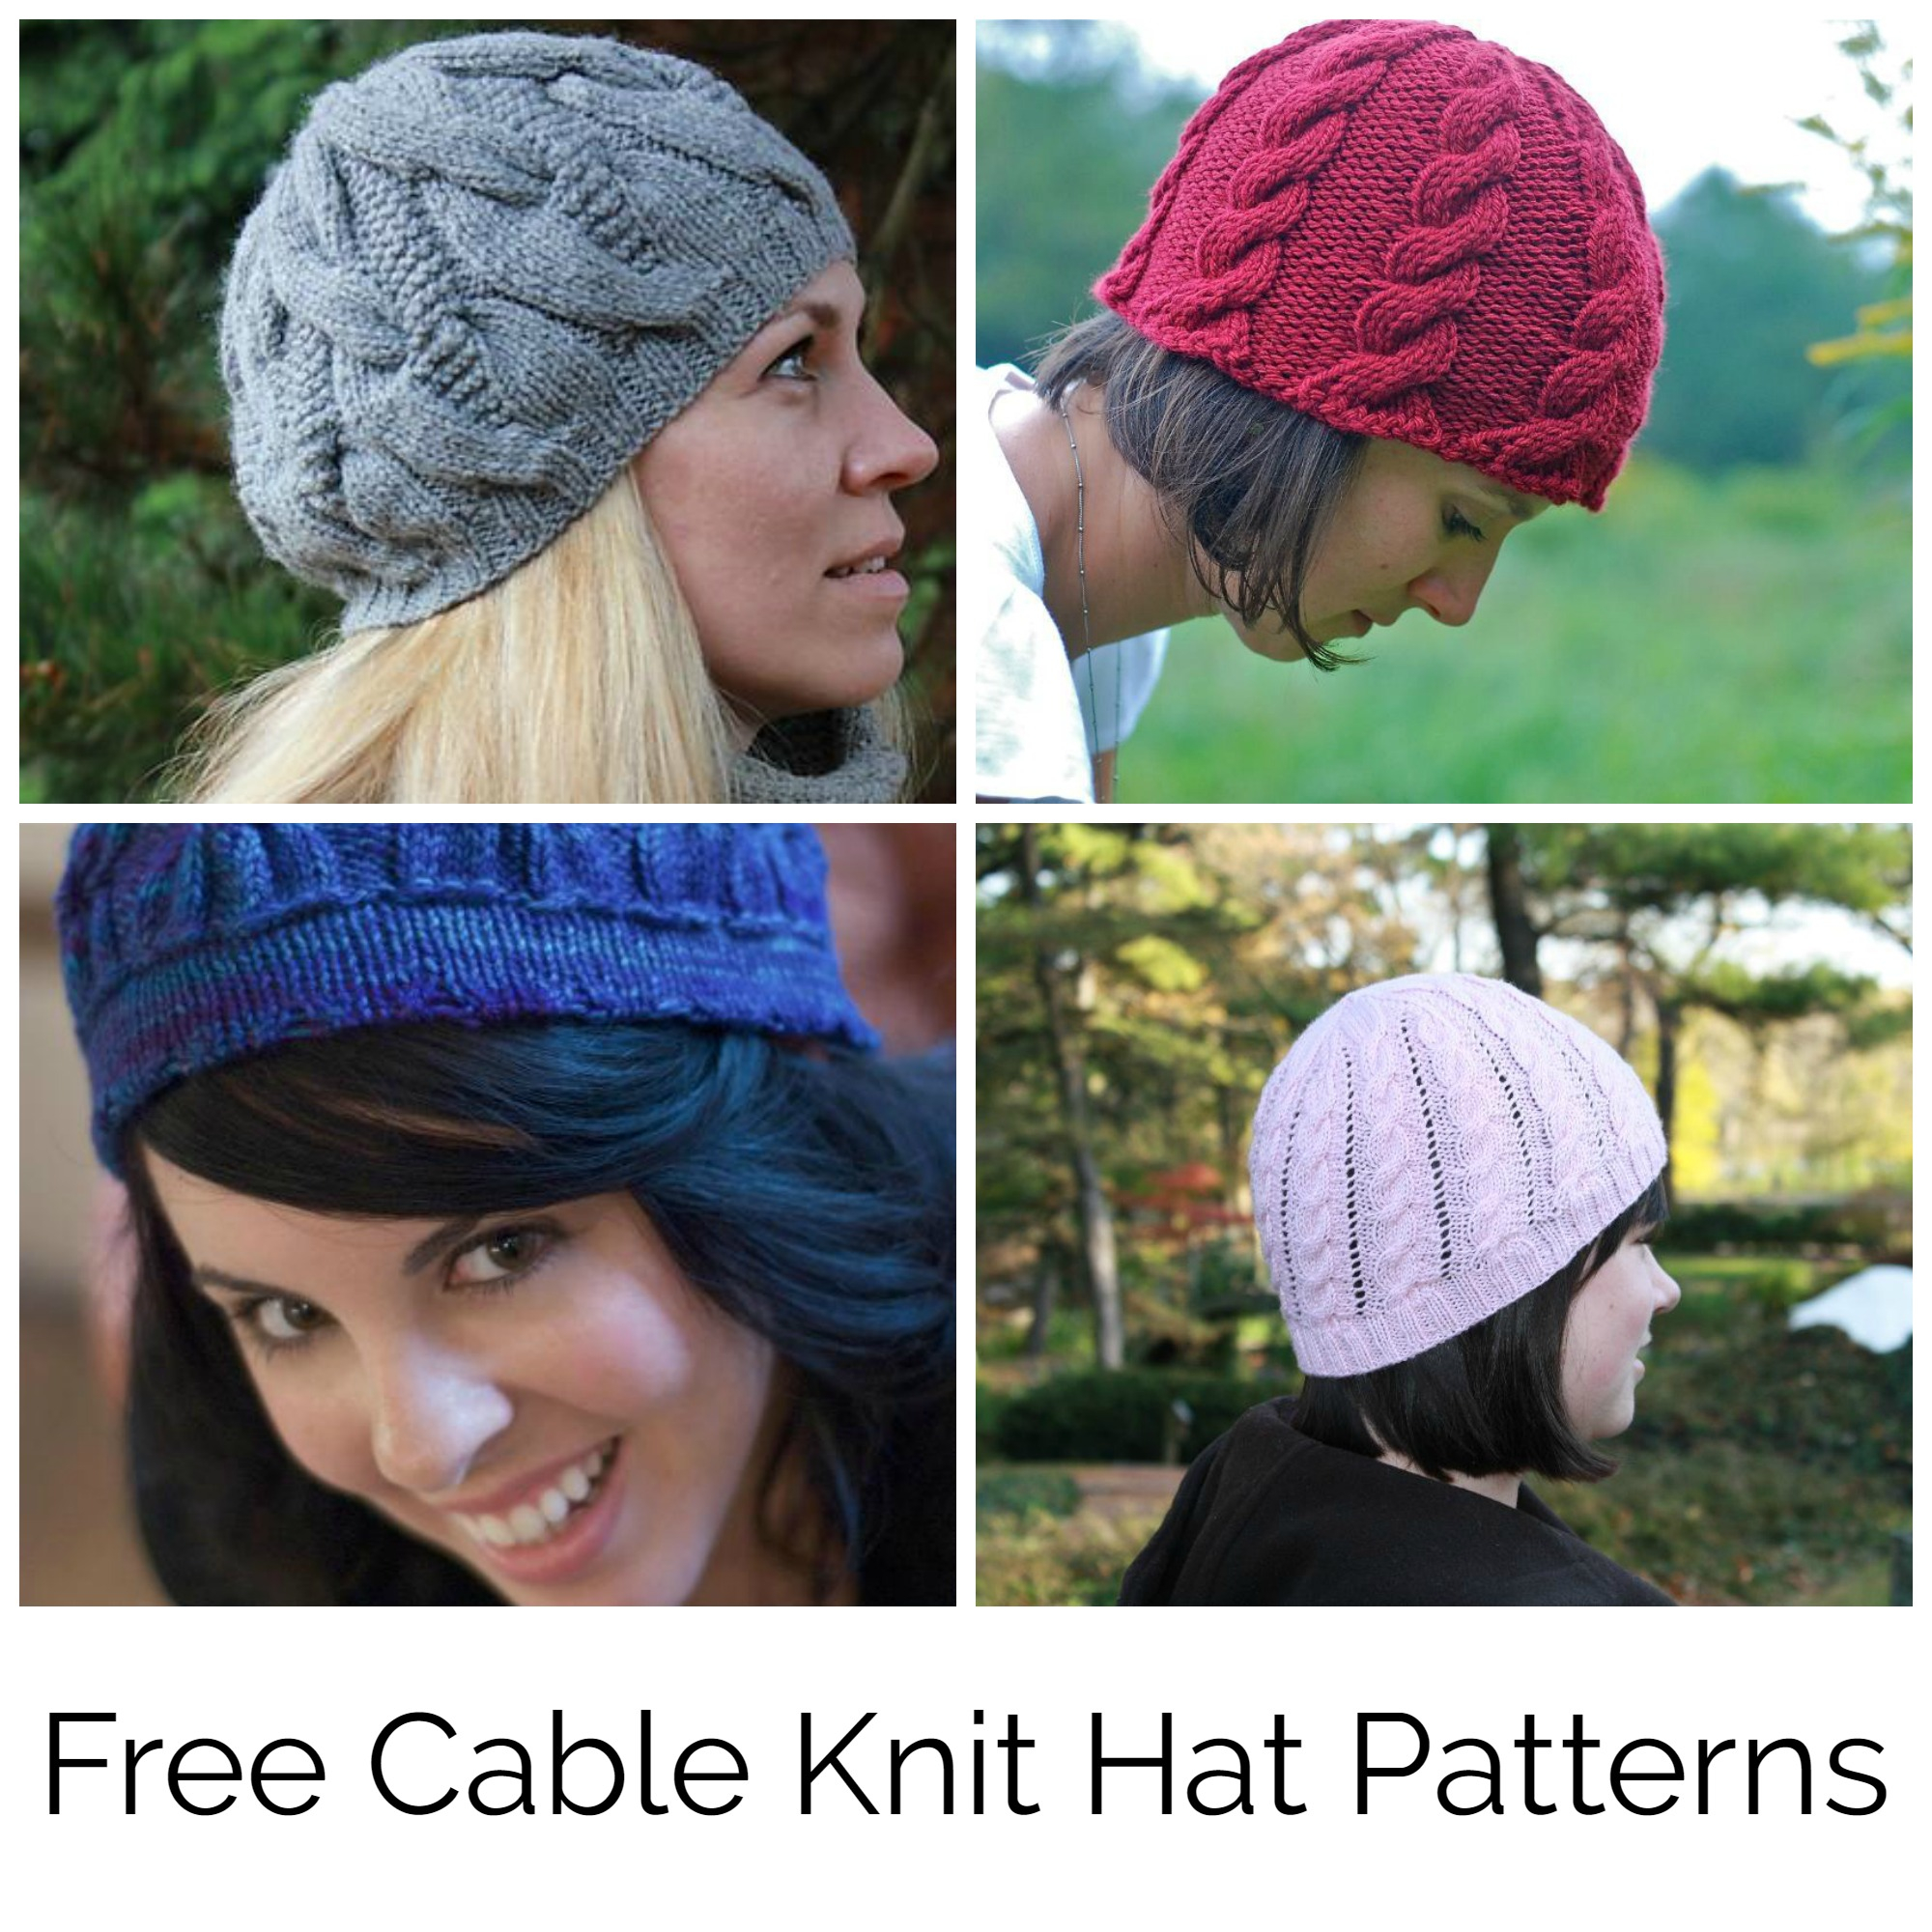 Bobble Hat Knitting Pattern Free Find Your Favorite Free Cable Knit Hat Pattern